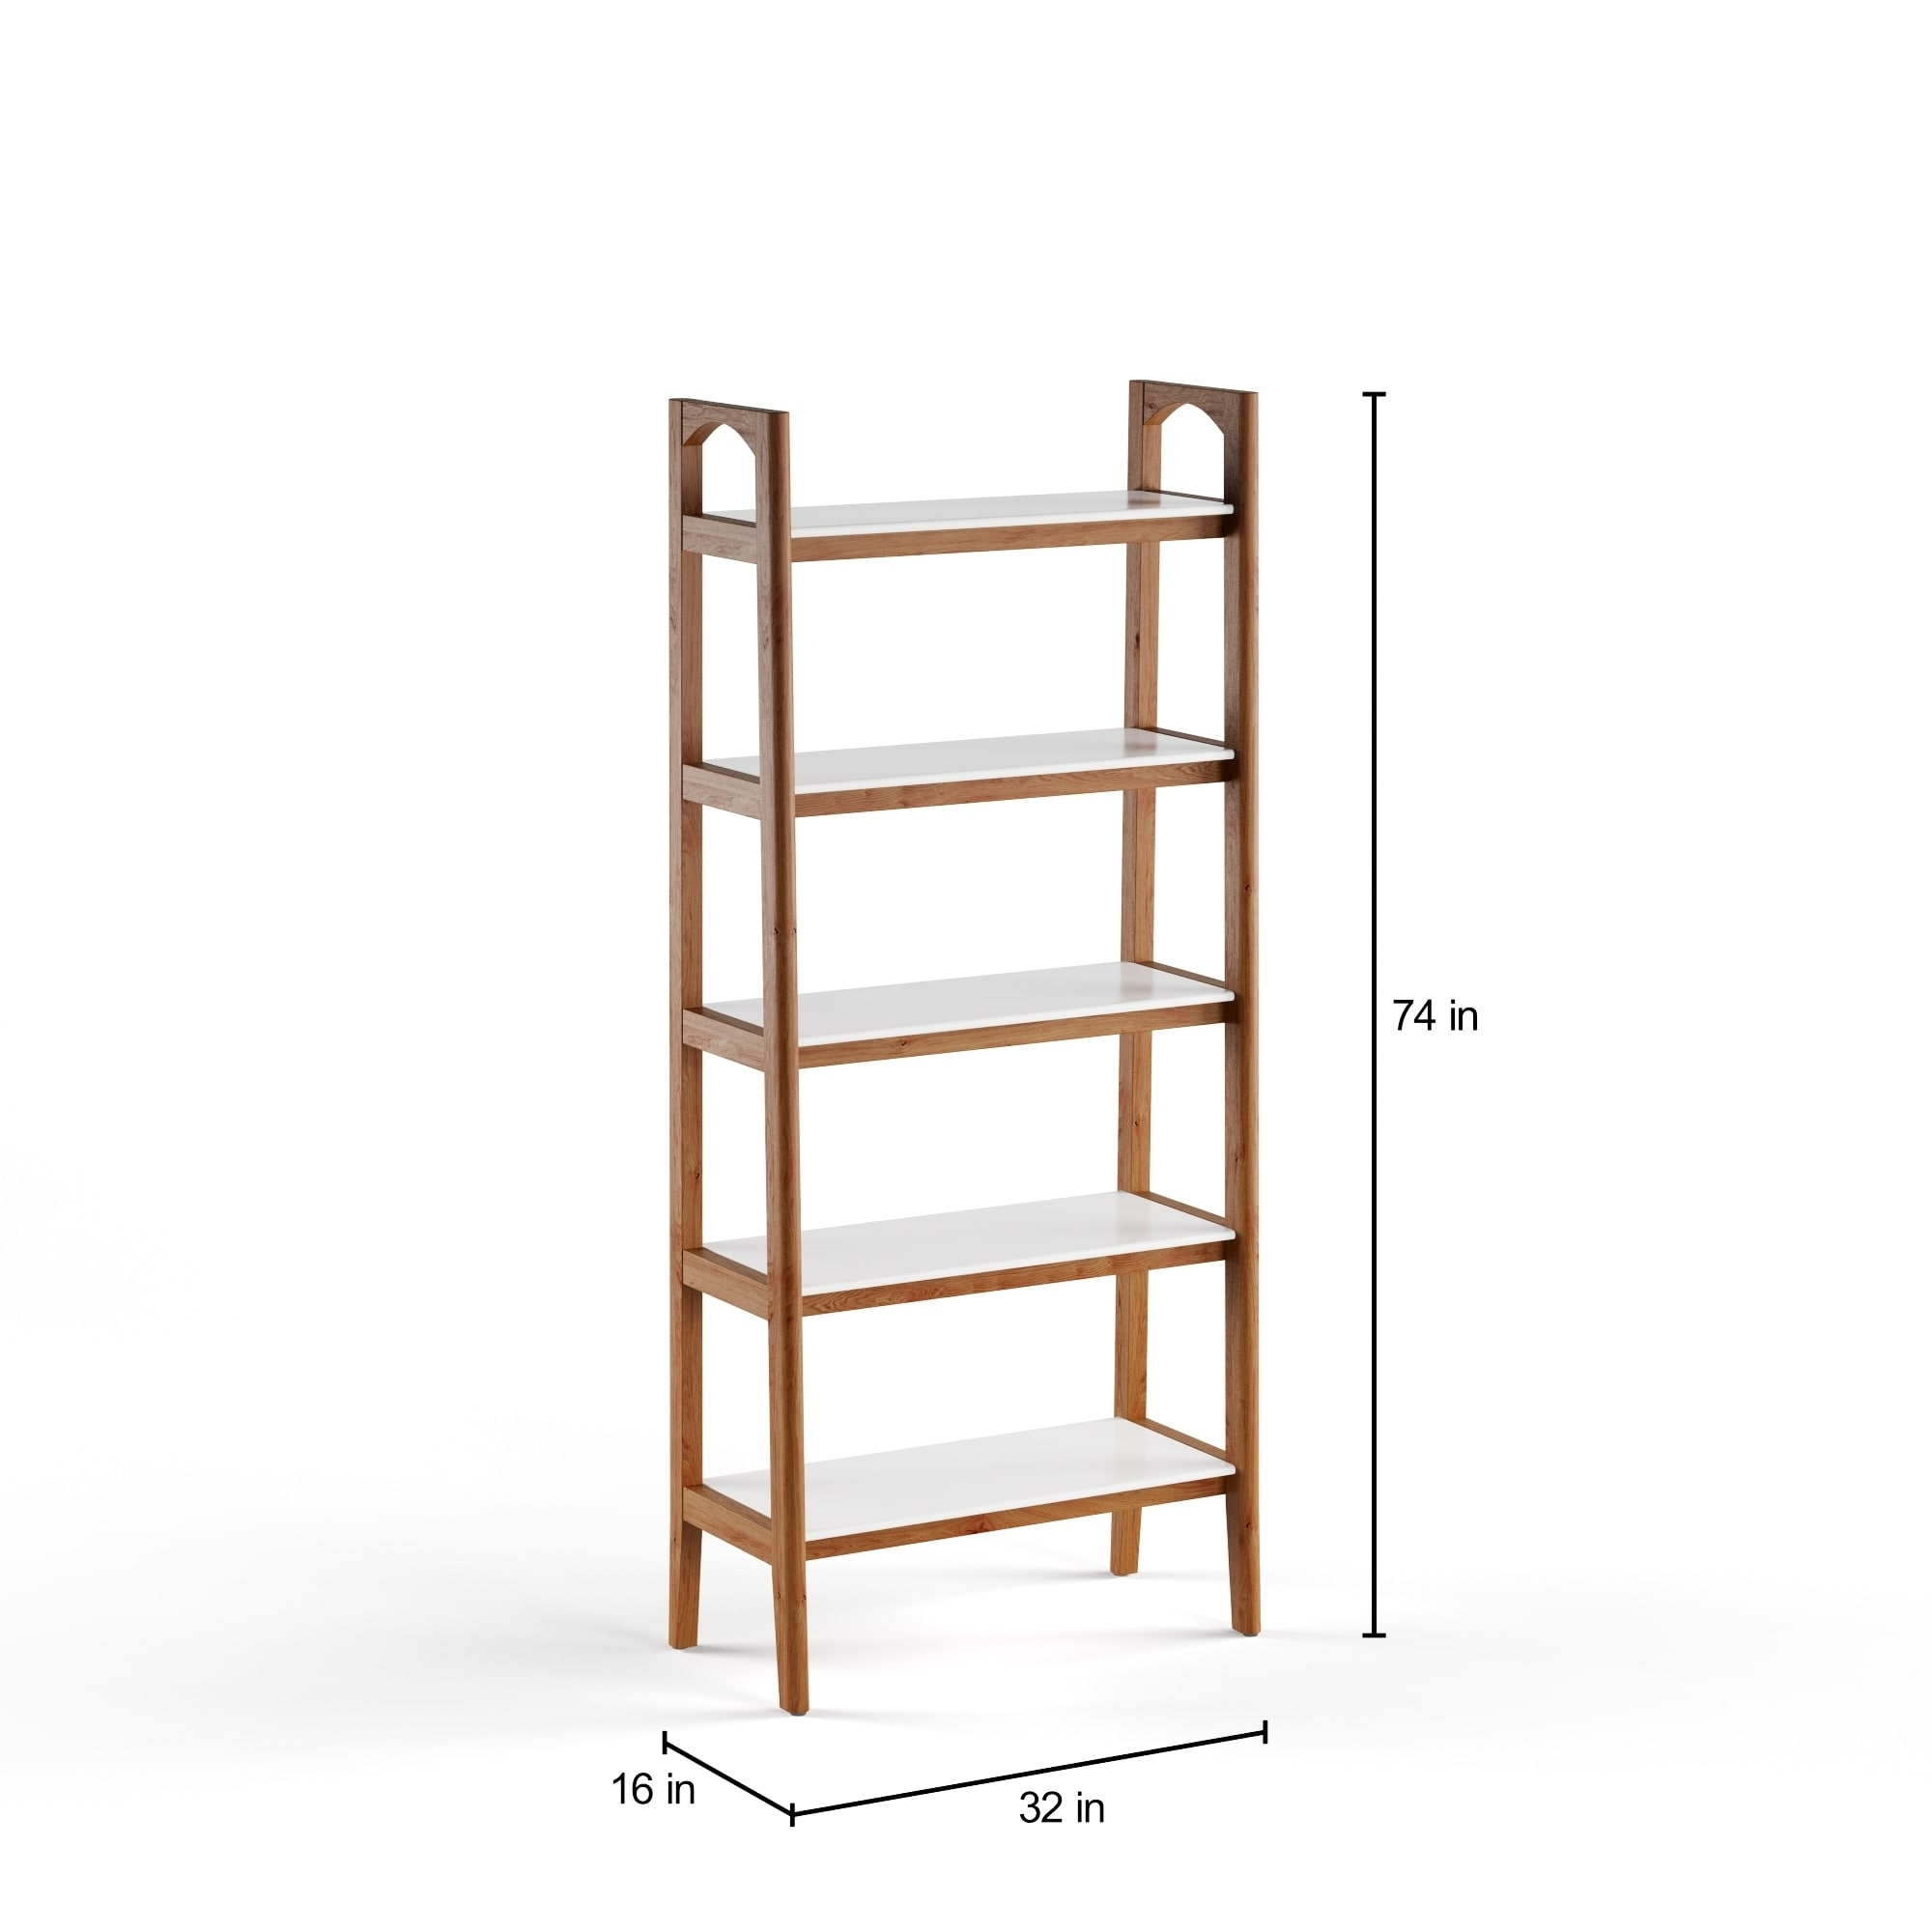 buffet wall storage shelf bookshelves on the shelfs small bookcase bookshelf bookcases shelves white book furniture with exciting ladder design leaning ladders espresso corner